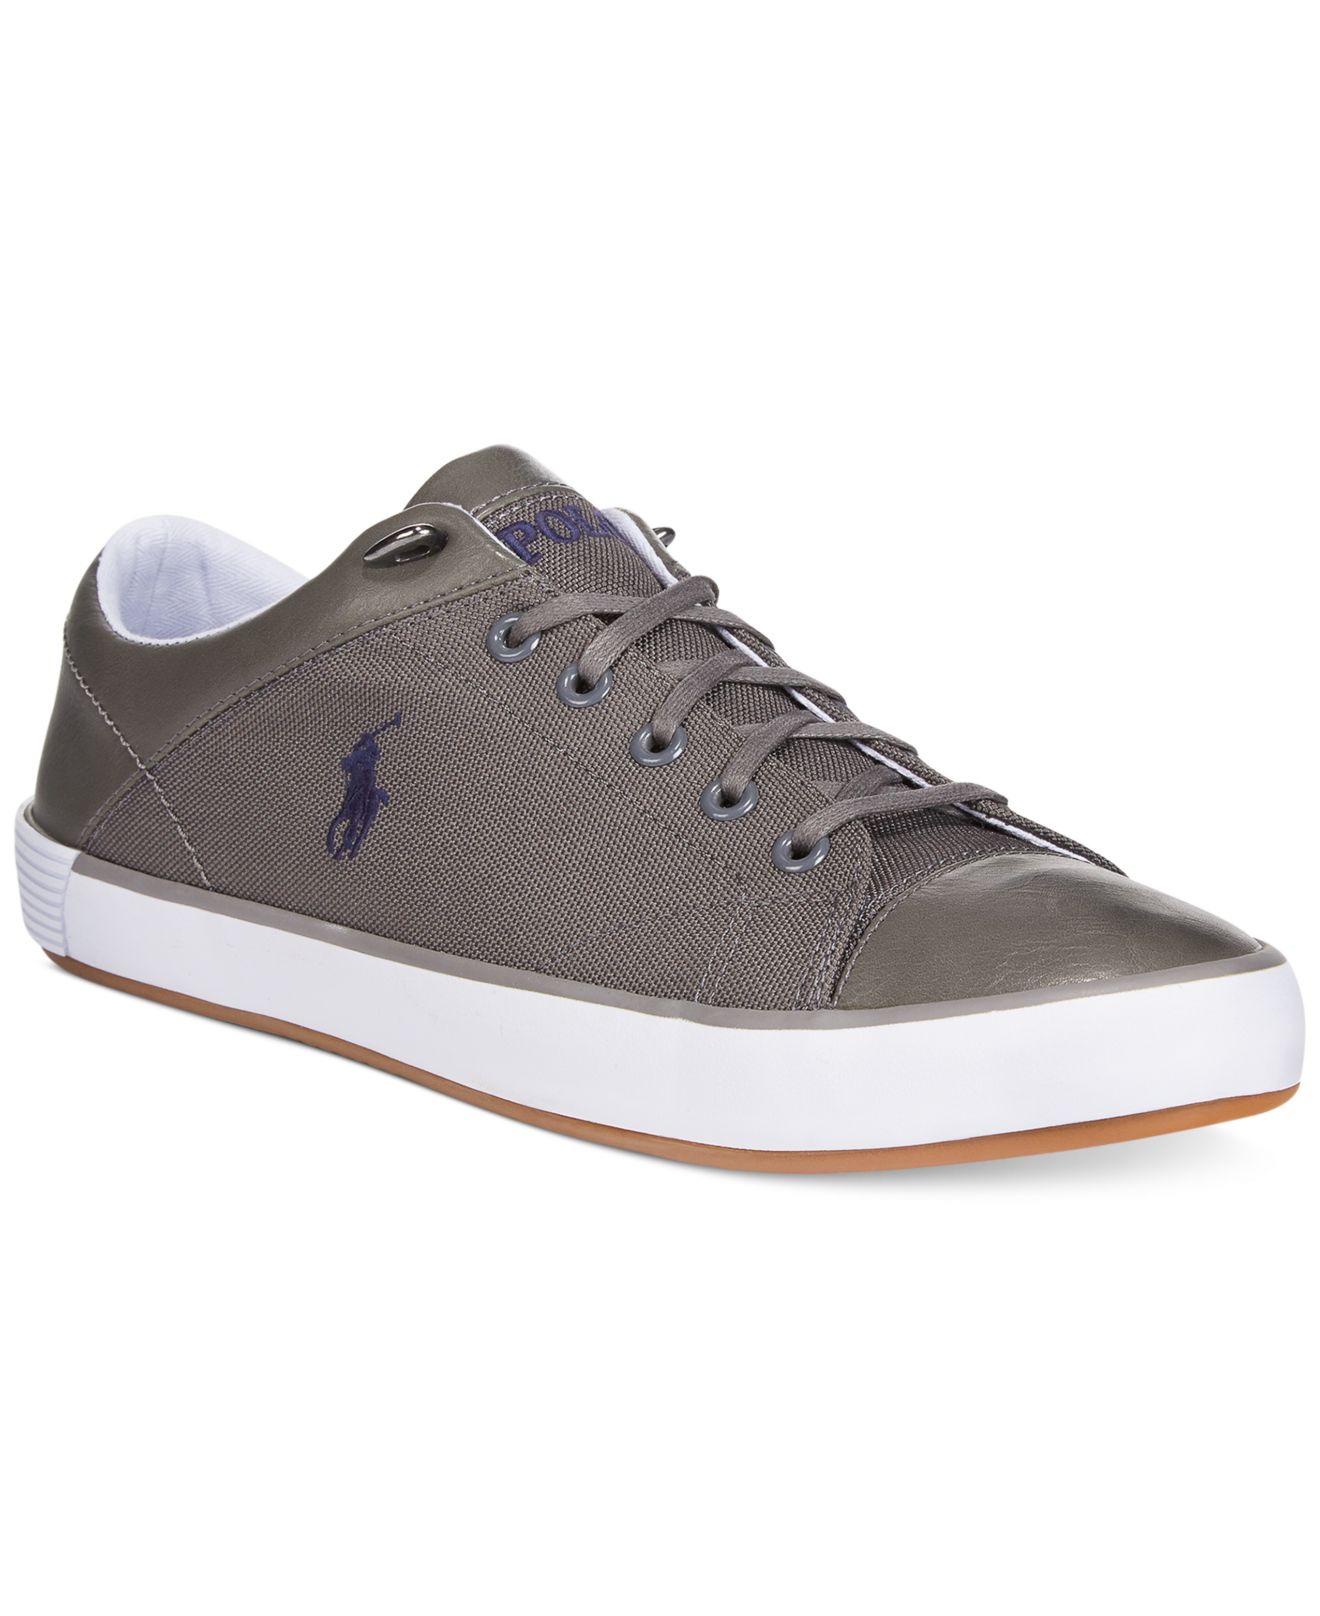 lyst polo ralph lauren jerom sneakers in gray for men. Black Bedroom Furniture Sets. Home Design Ideas